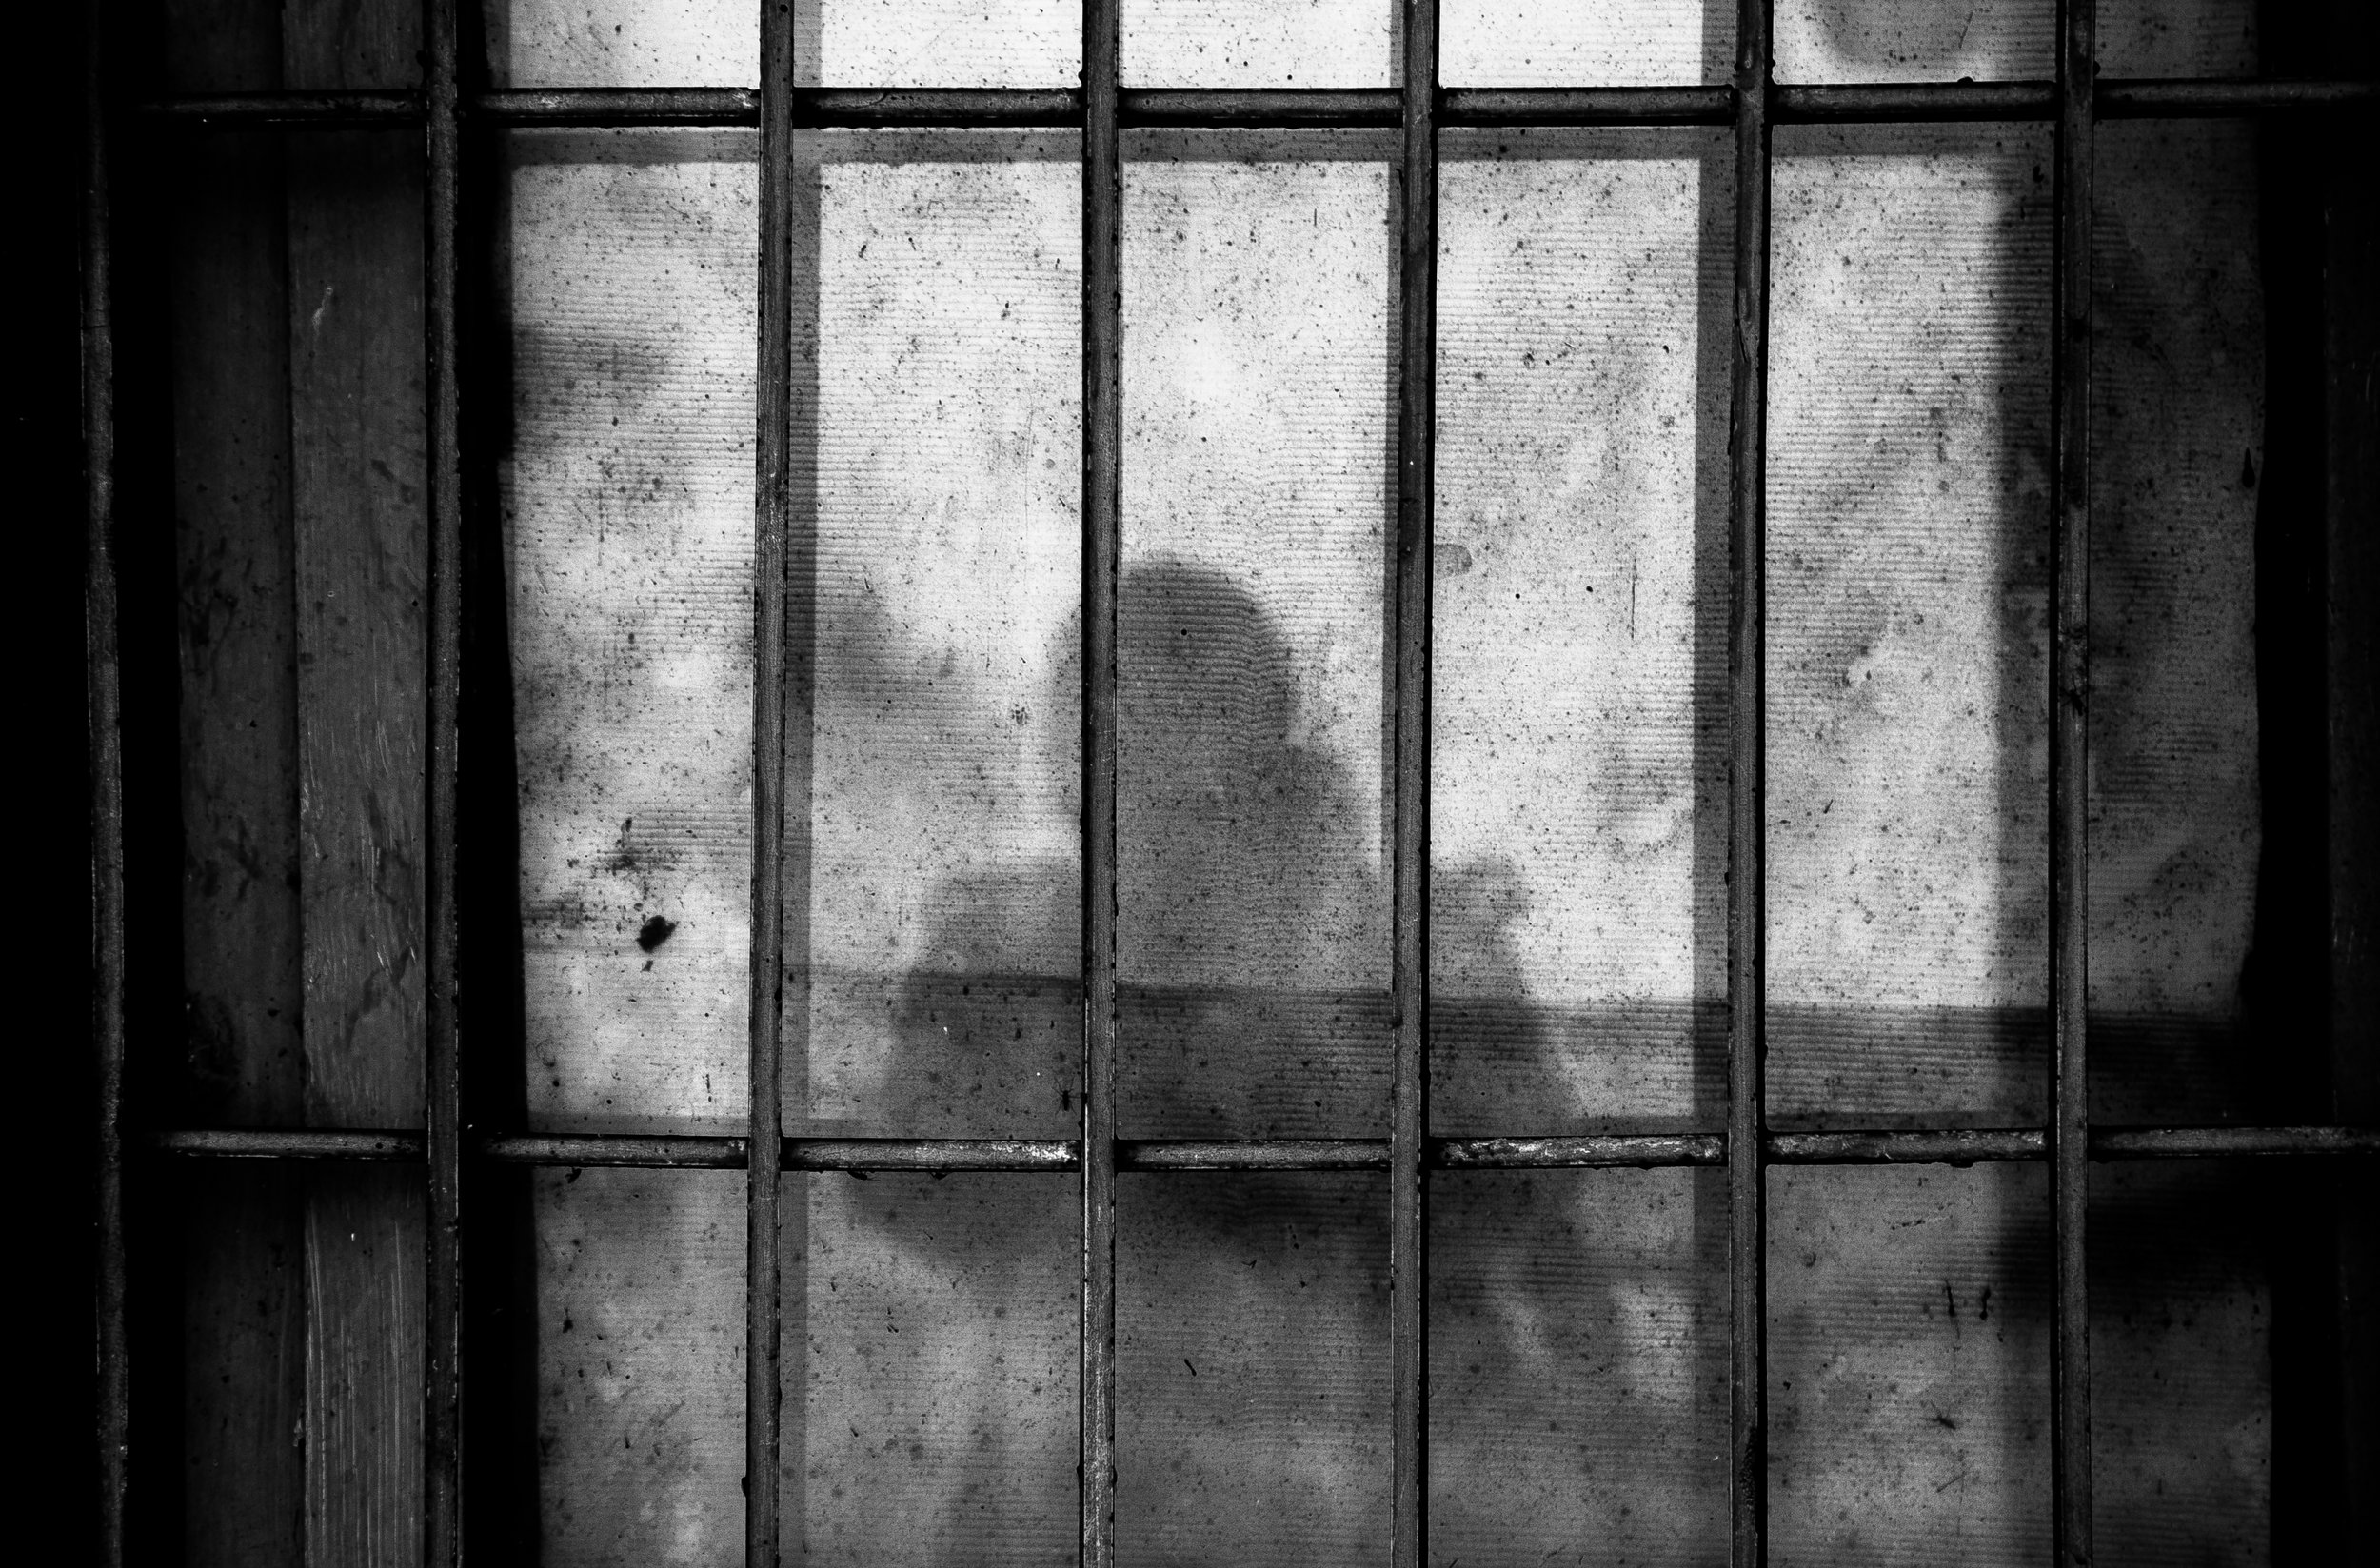 Image of a shadow and a jail cell. Credit: Ye Jinghan/Unsplash